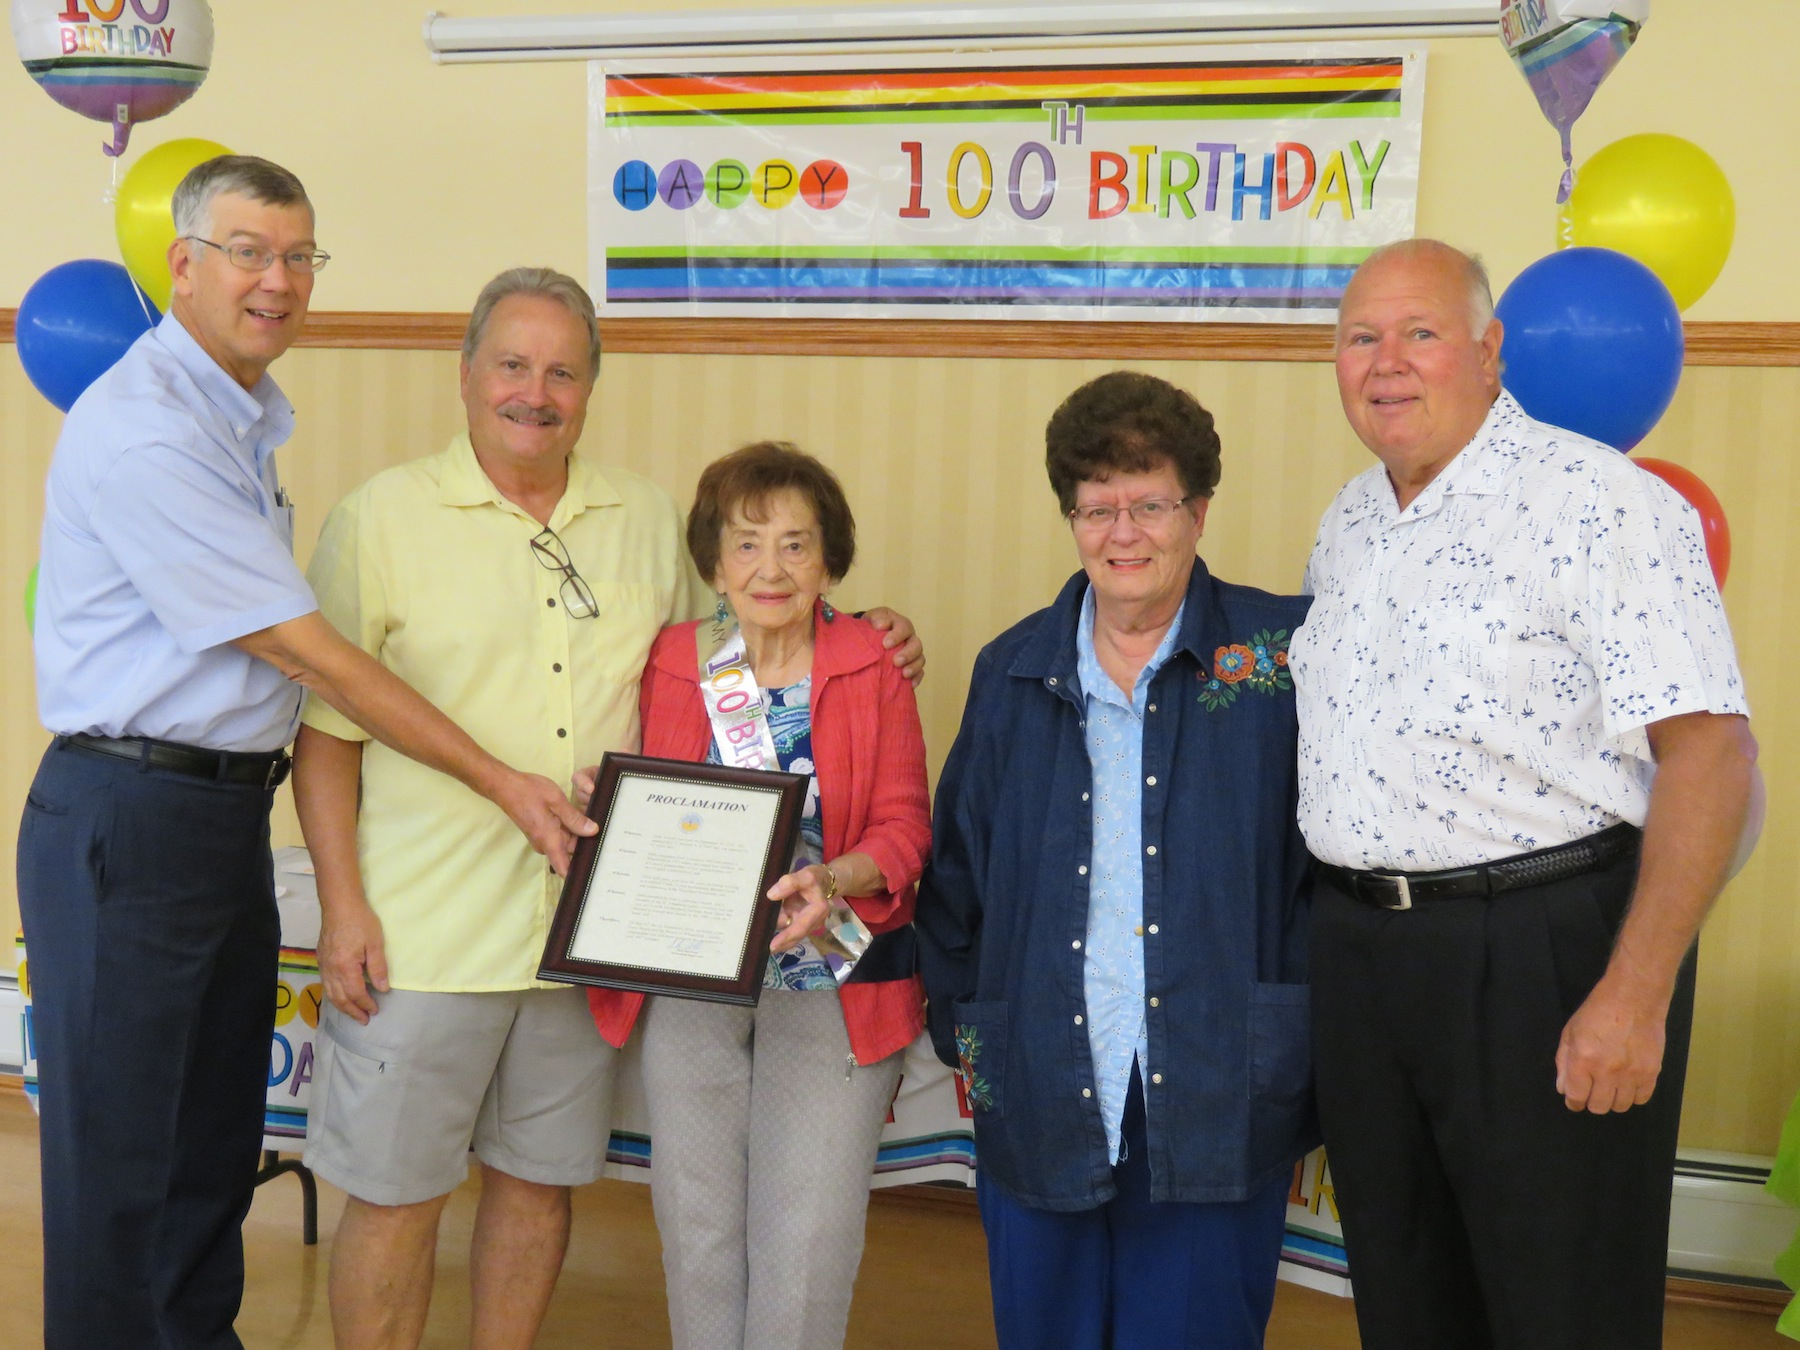 Pictured, from left, Wheatfield Councilman Larry Helwig, Roy Seiwell, Brifa Seiwell, Senior Director Arlene Mante and Wheatfield Councilman Gil Doucet. (Photo by David Yarger)